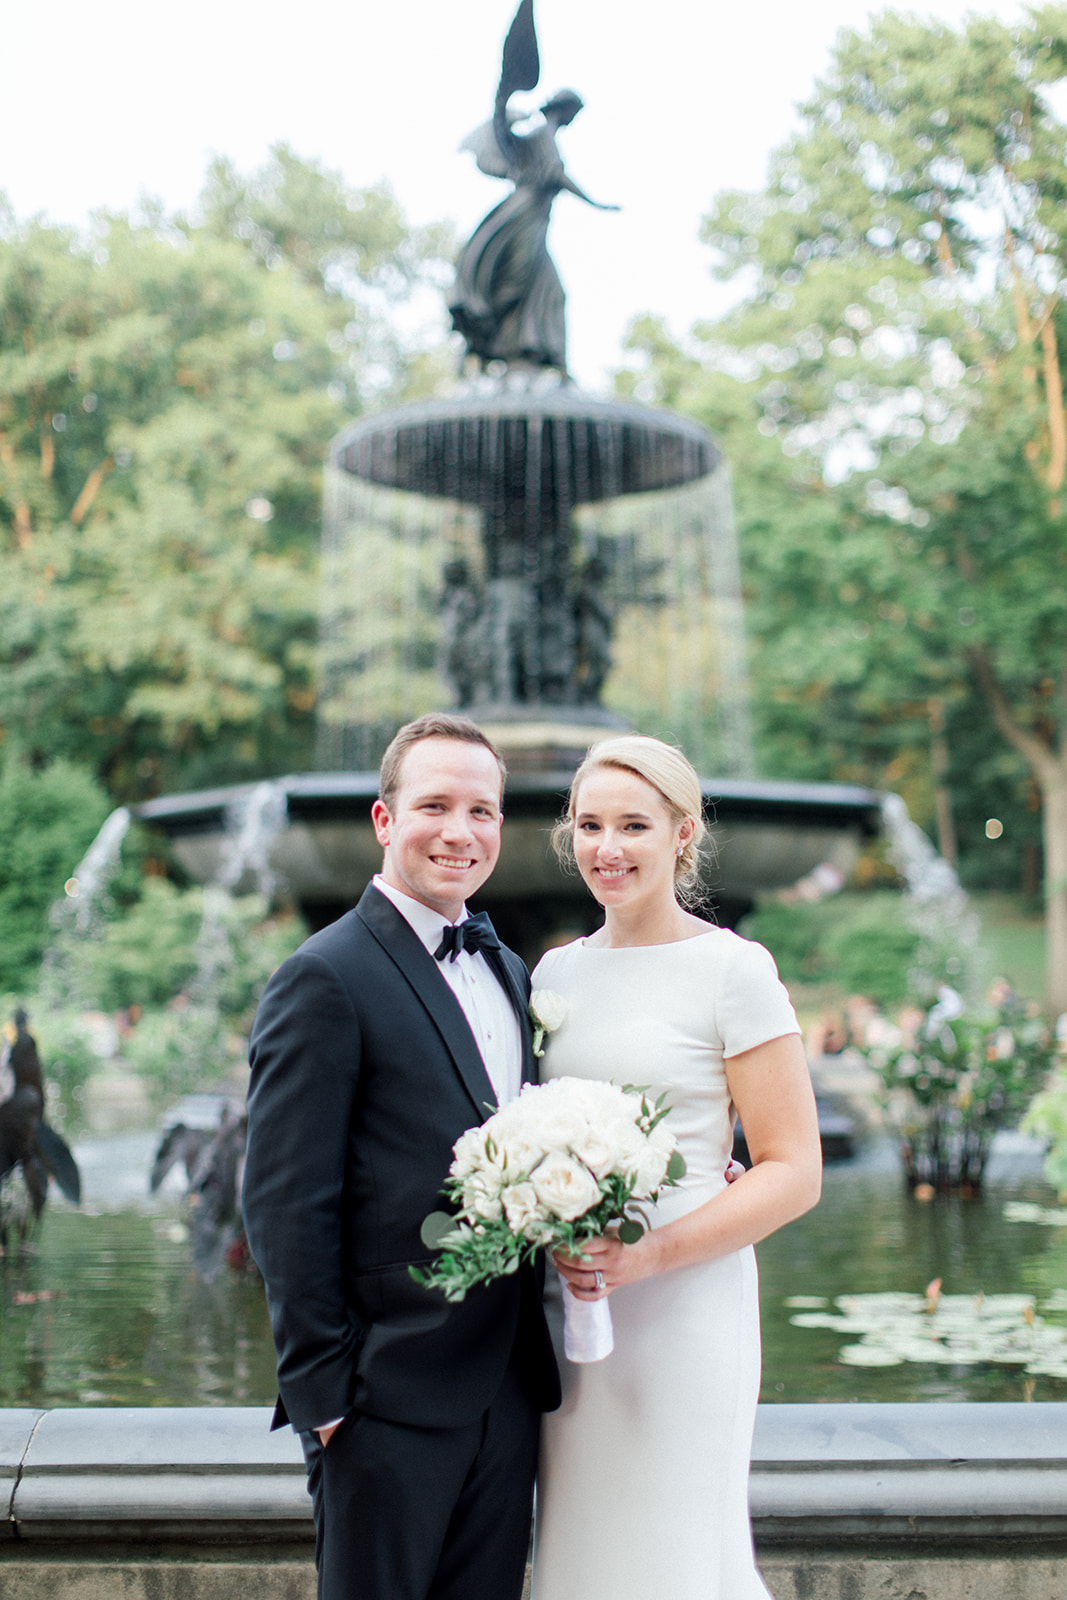 eab2698d5 Kleinfeld Hotel Blocks is, without a doubt, the best service out there!  Allyson was an absolute pleasure to work with! I got married in New York  City and ...